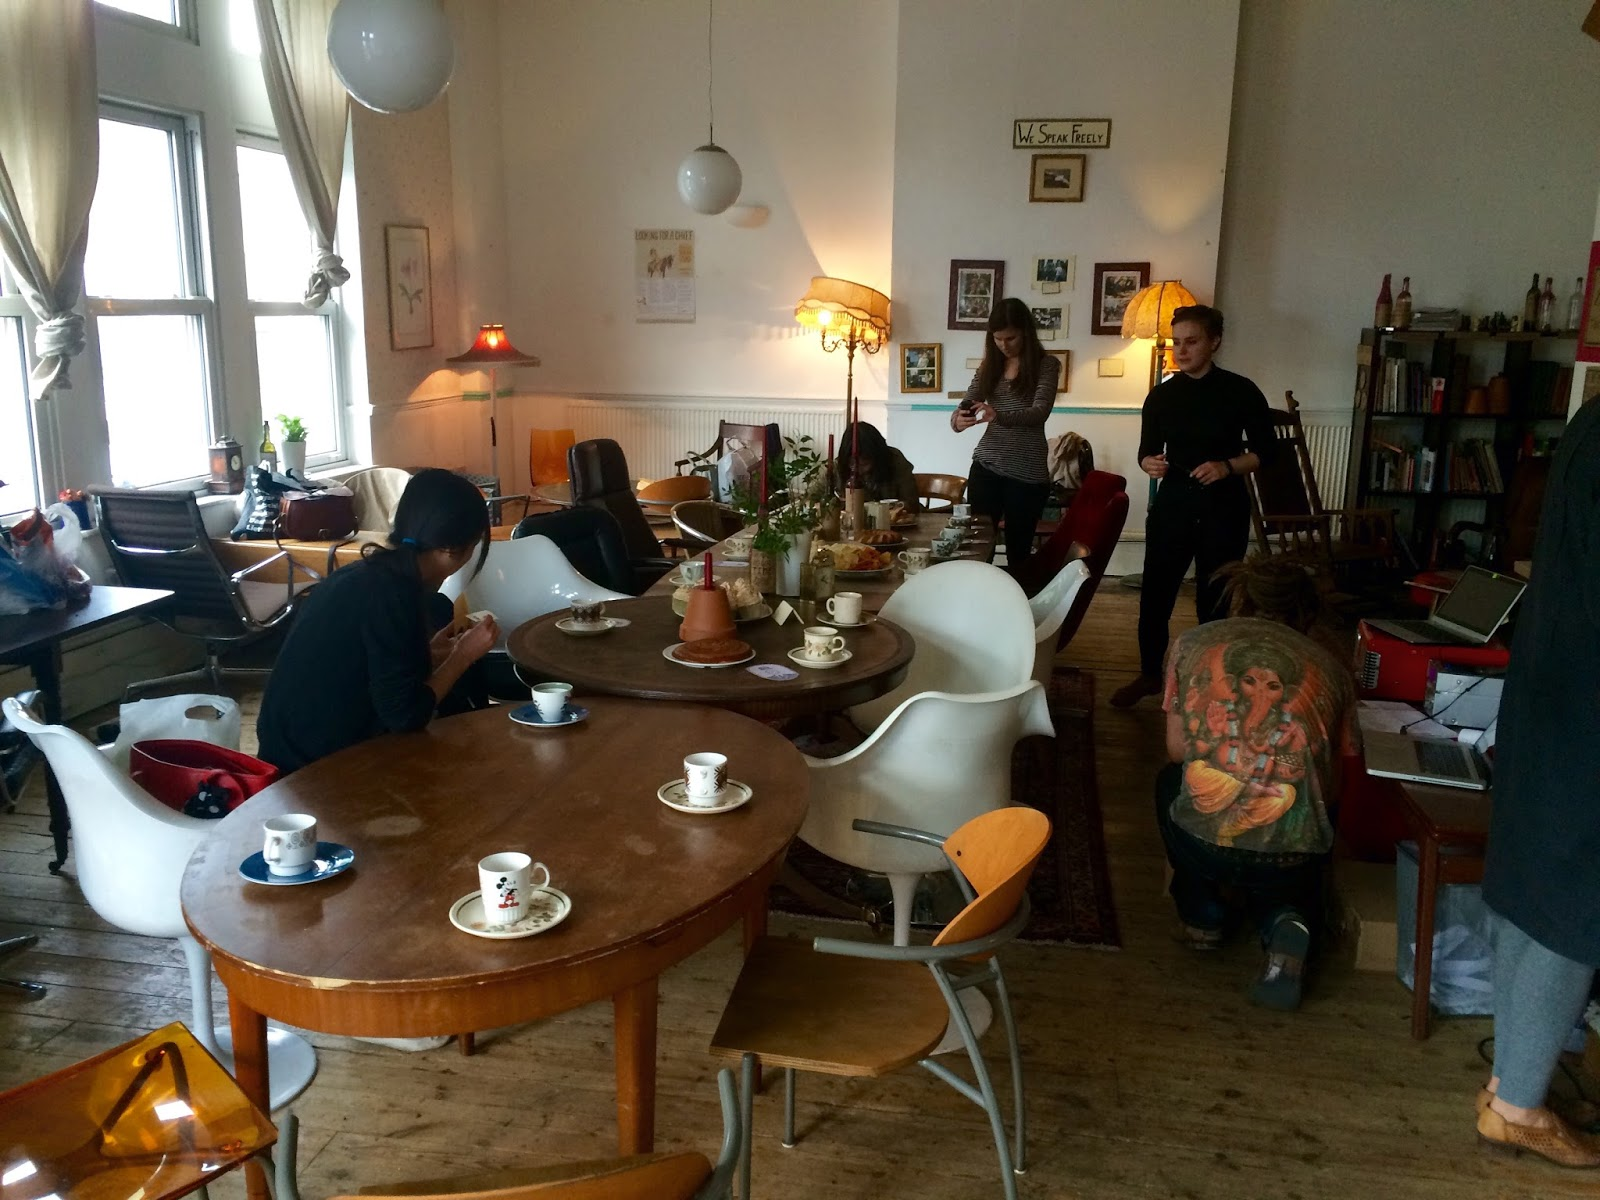 Our Wonderful Host David From Ziferblat Kept The Tea Flowing And Conversation Lively His Passion For Cafe Living Room Was So Engaging He Also